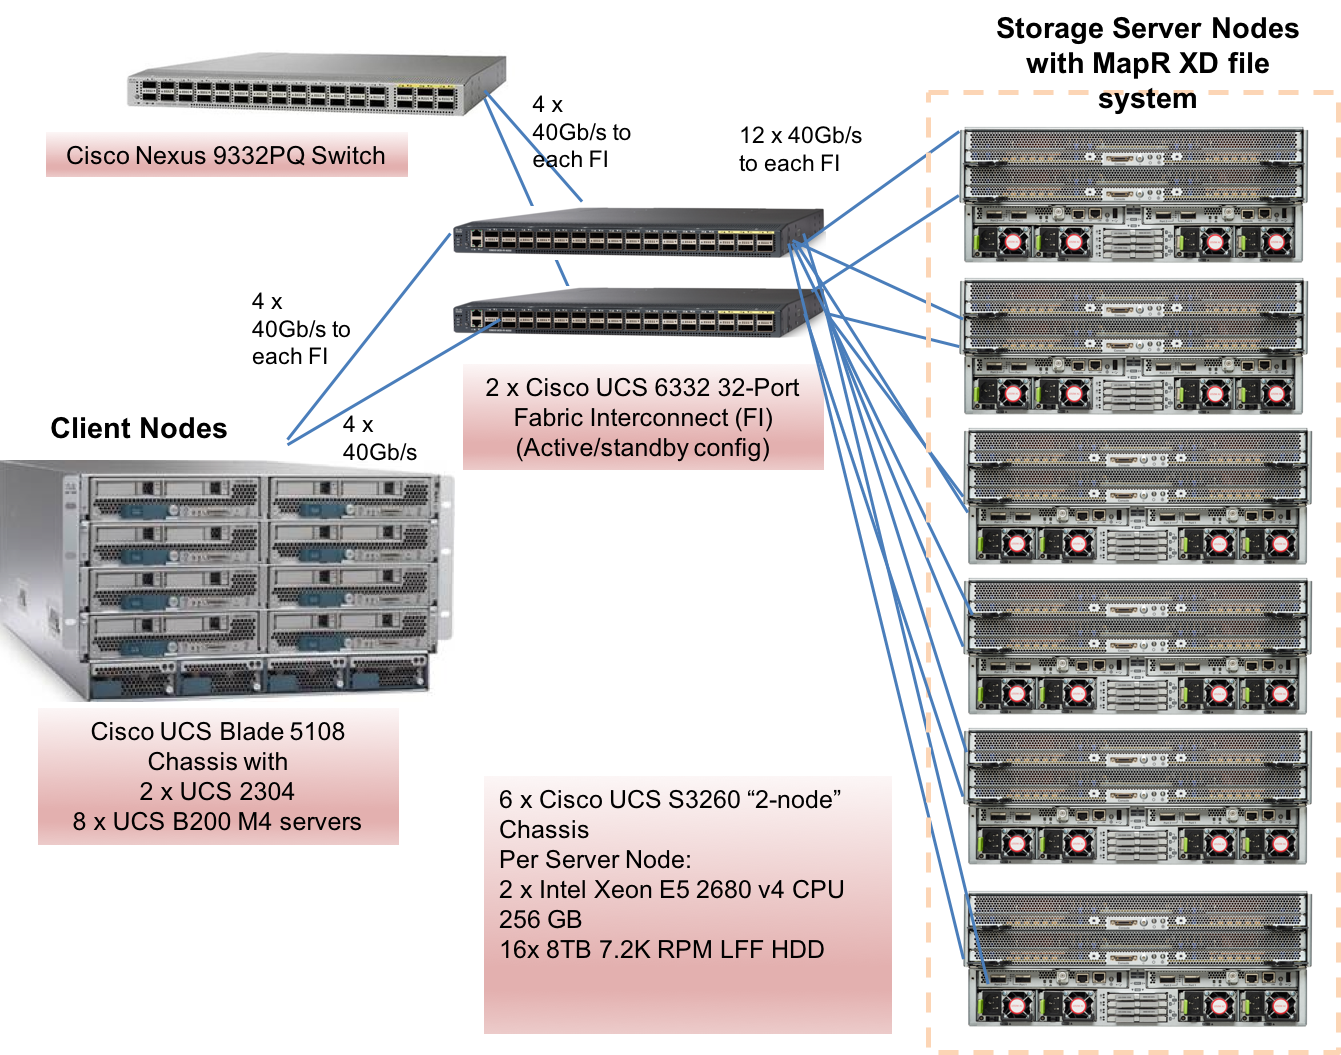 Spec Sfs2014 Vda Result Cisco Systems Inc Ucs S3260 With Switch Diagram Solution Under Test Physical View